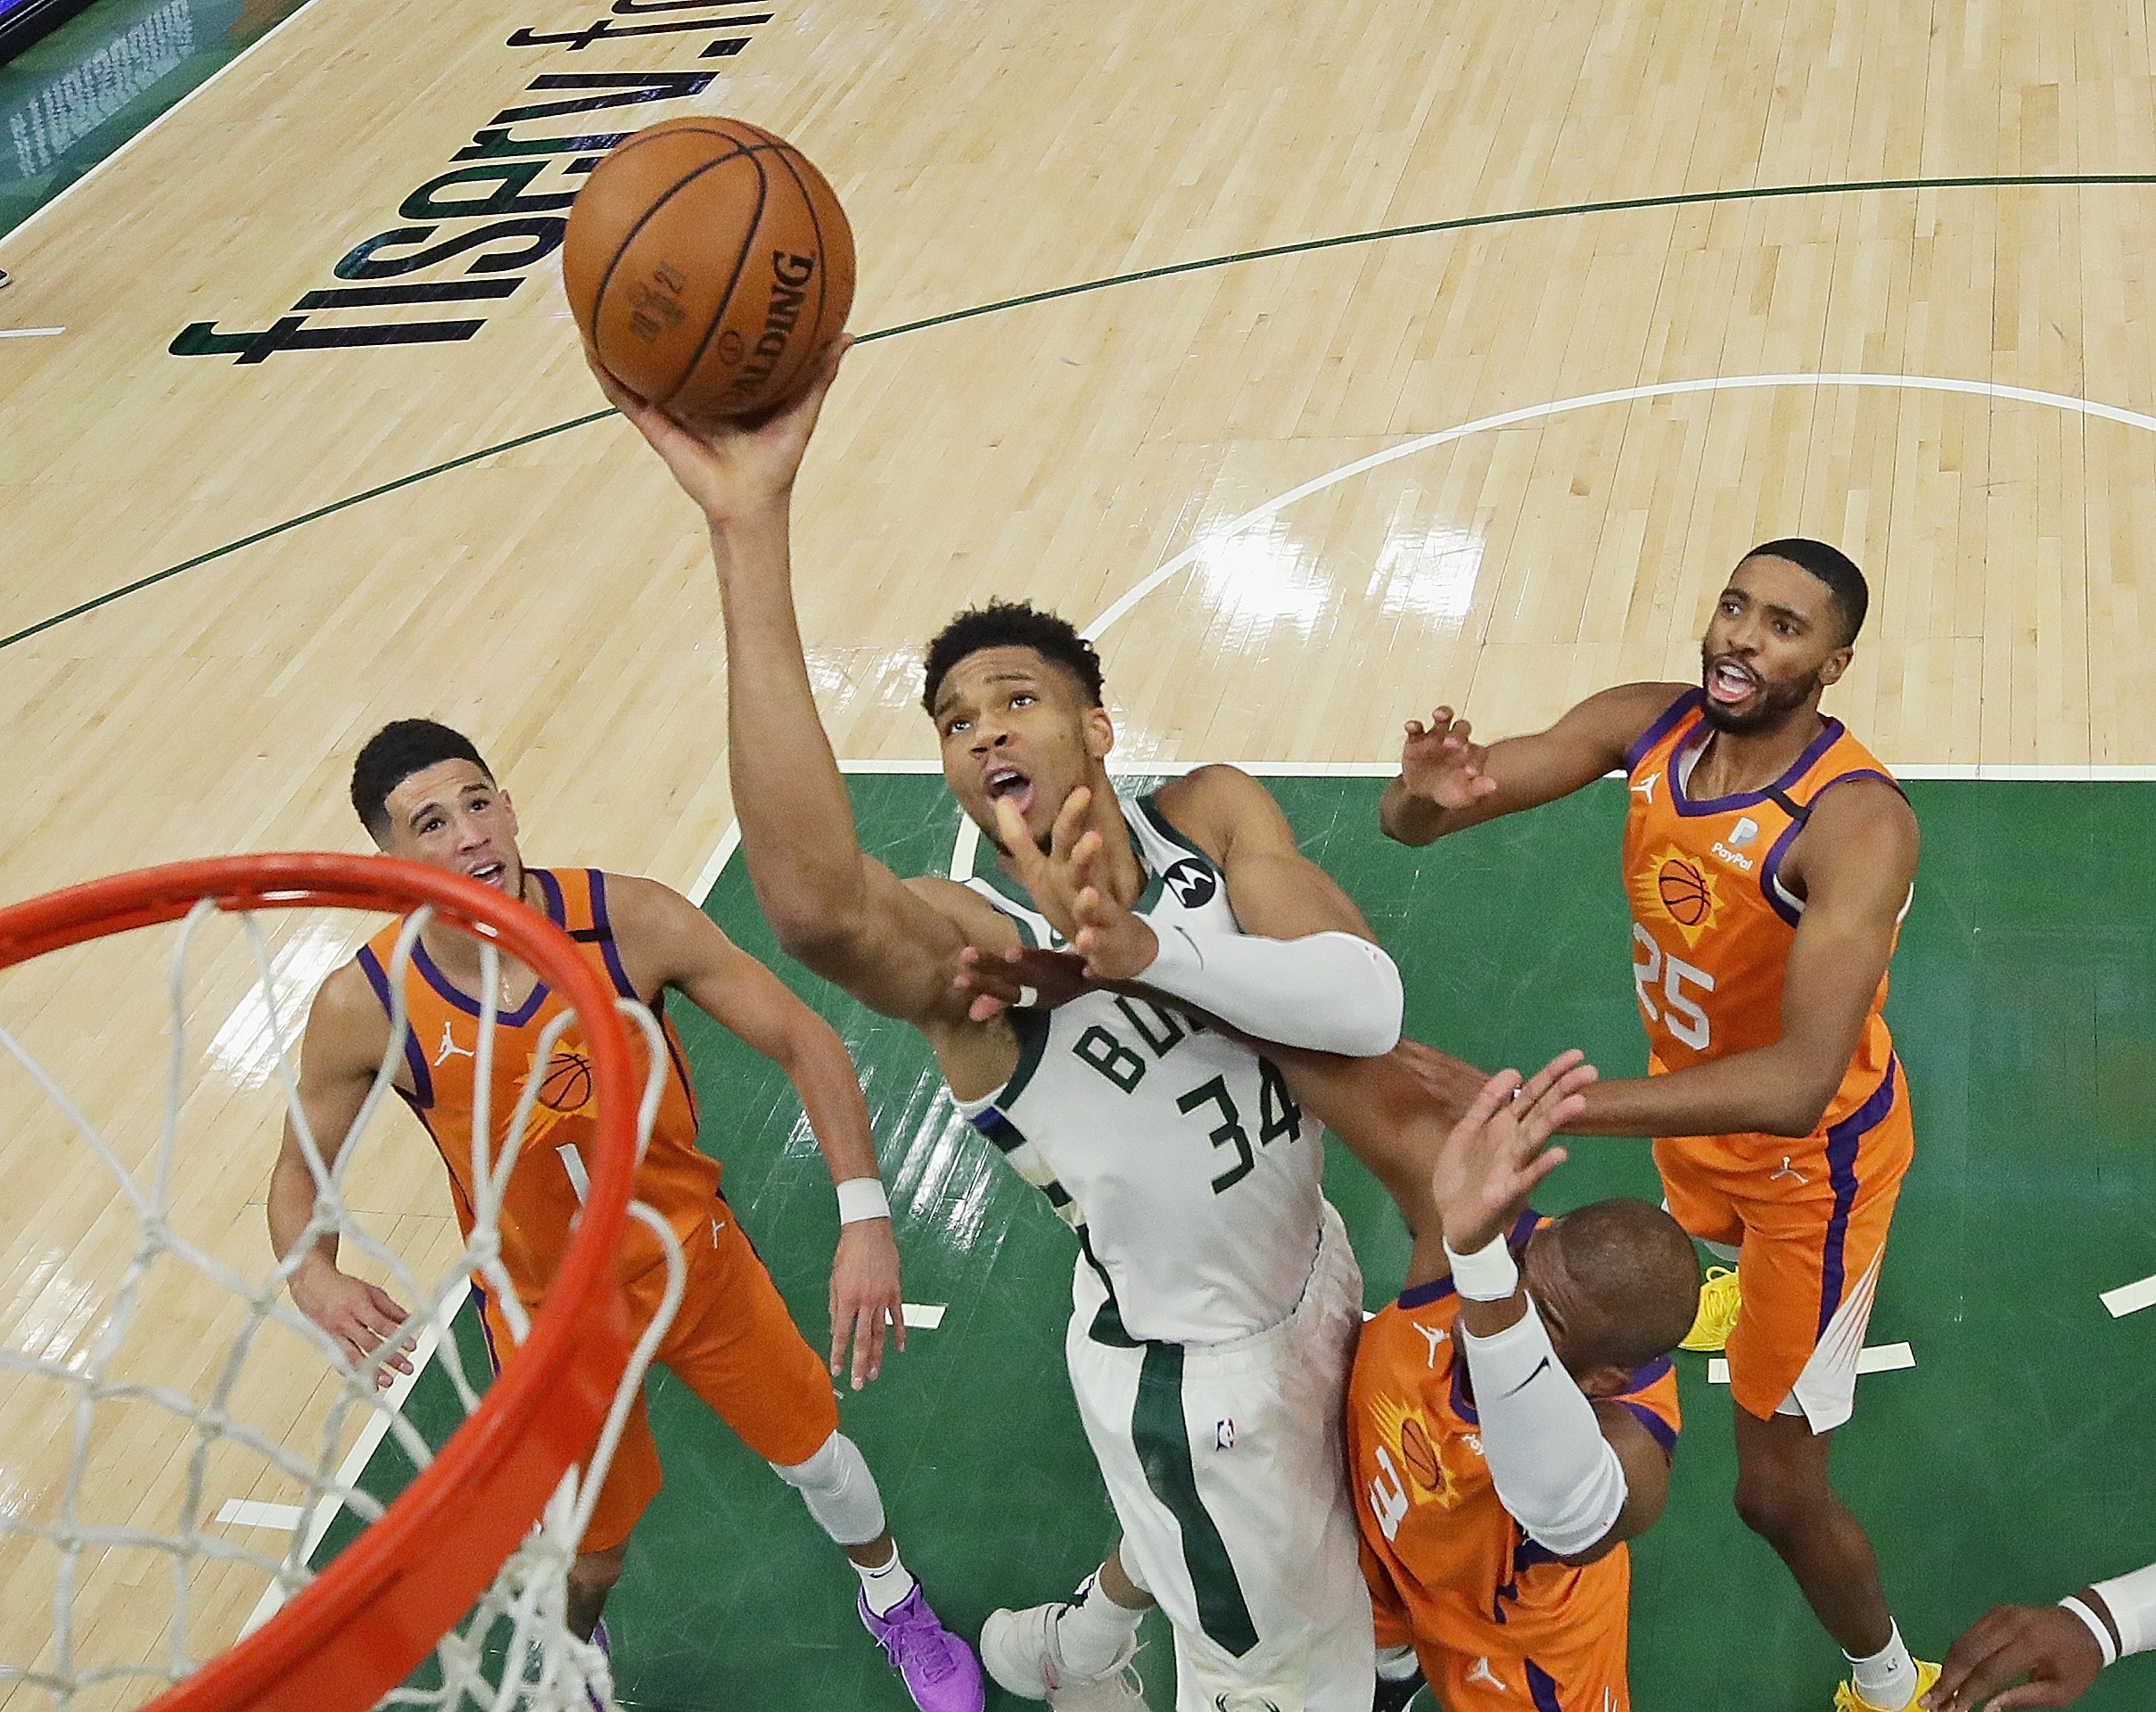 Giannis Antetokounmpo of the Milwaukee Bucks shoots over Devin Booker, Chris Paul and Mikal Bridges of the Phoenix Suns at Fiserv Forum on July 14, 2021 in Milwaukee, Wisconsin. The Bucks defeated the Sun 109-103.